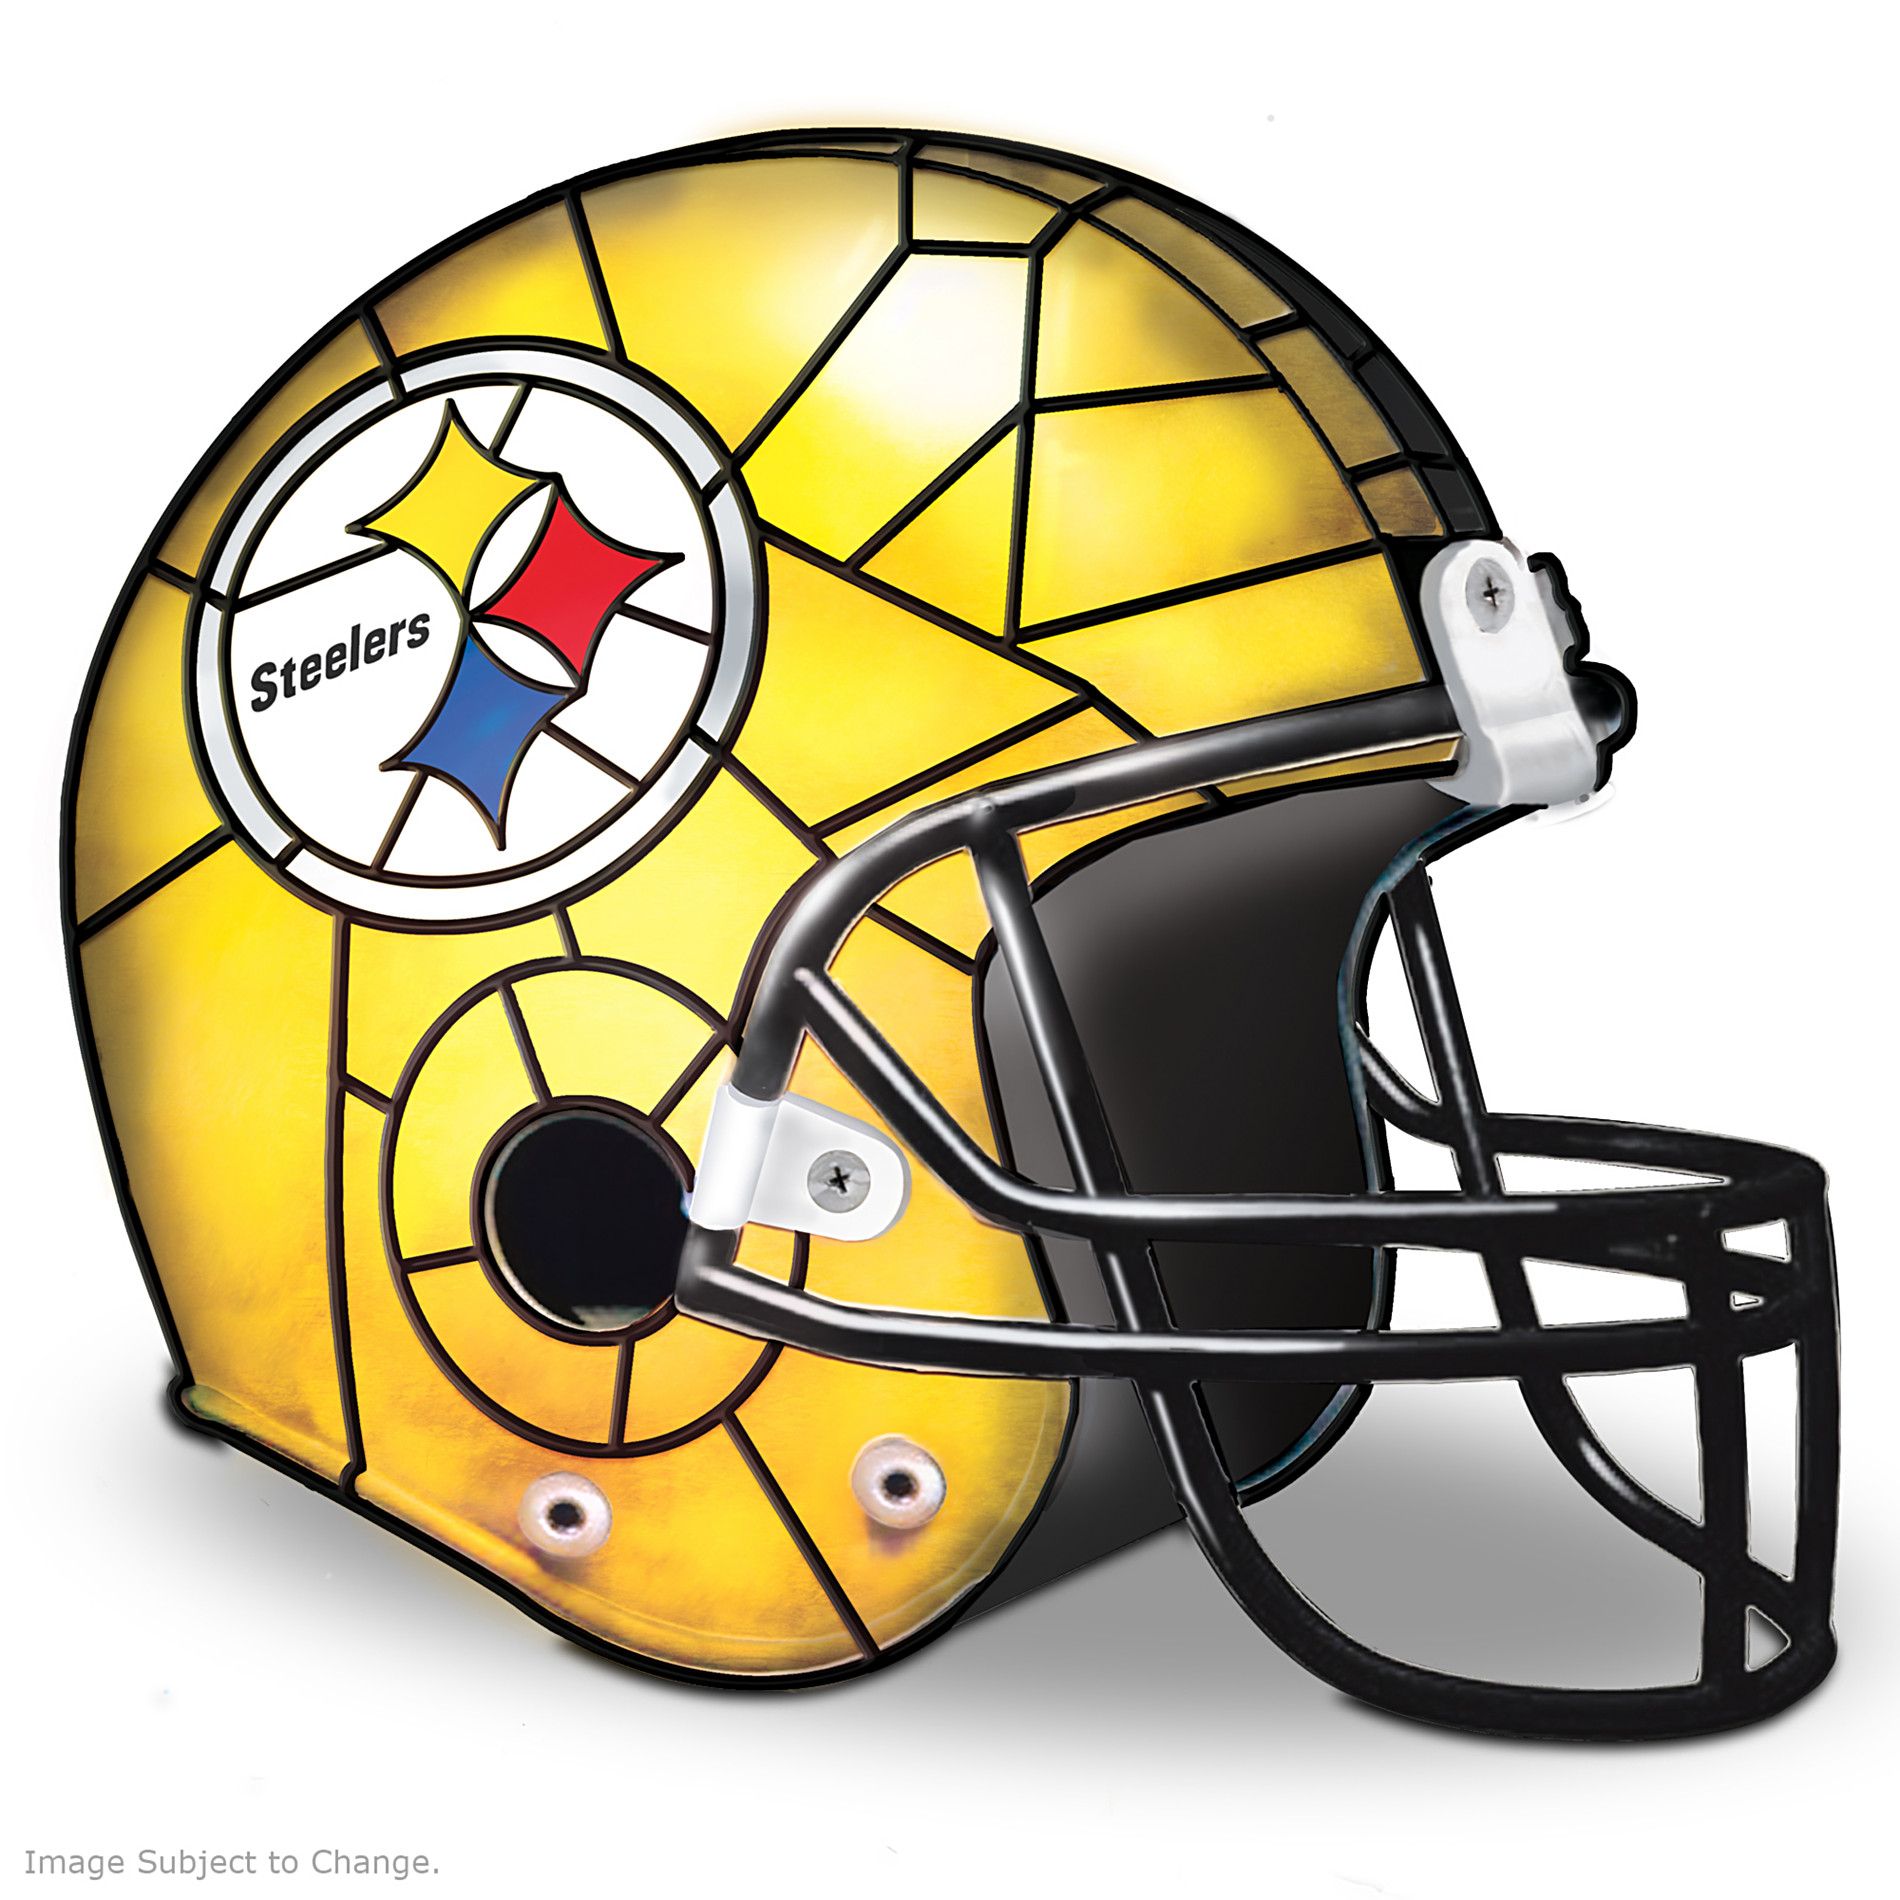 The Bradford Exchange The Pittsburgh Steelers Louis Comfort Tiffany-Style Accent Lamp at Sears.com